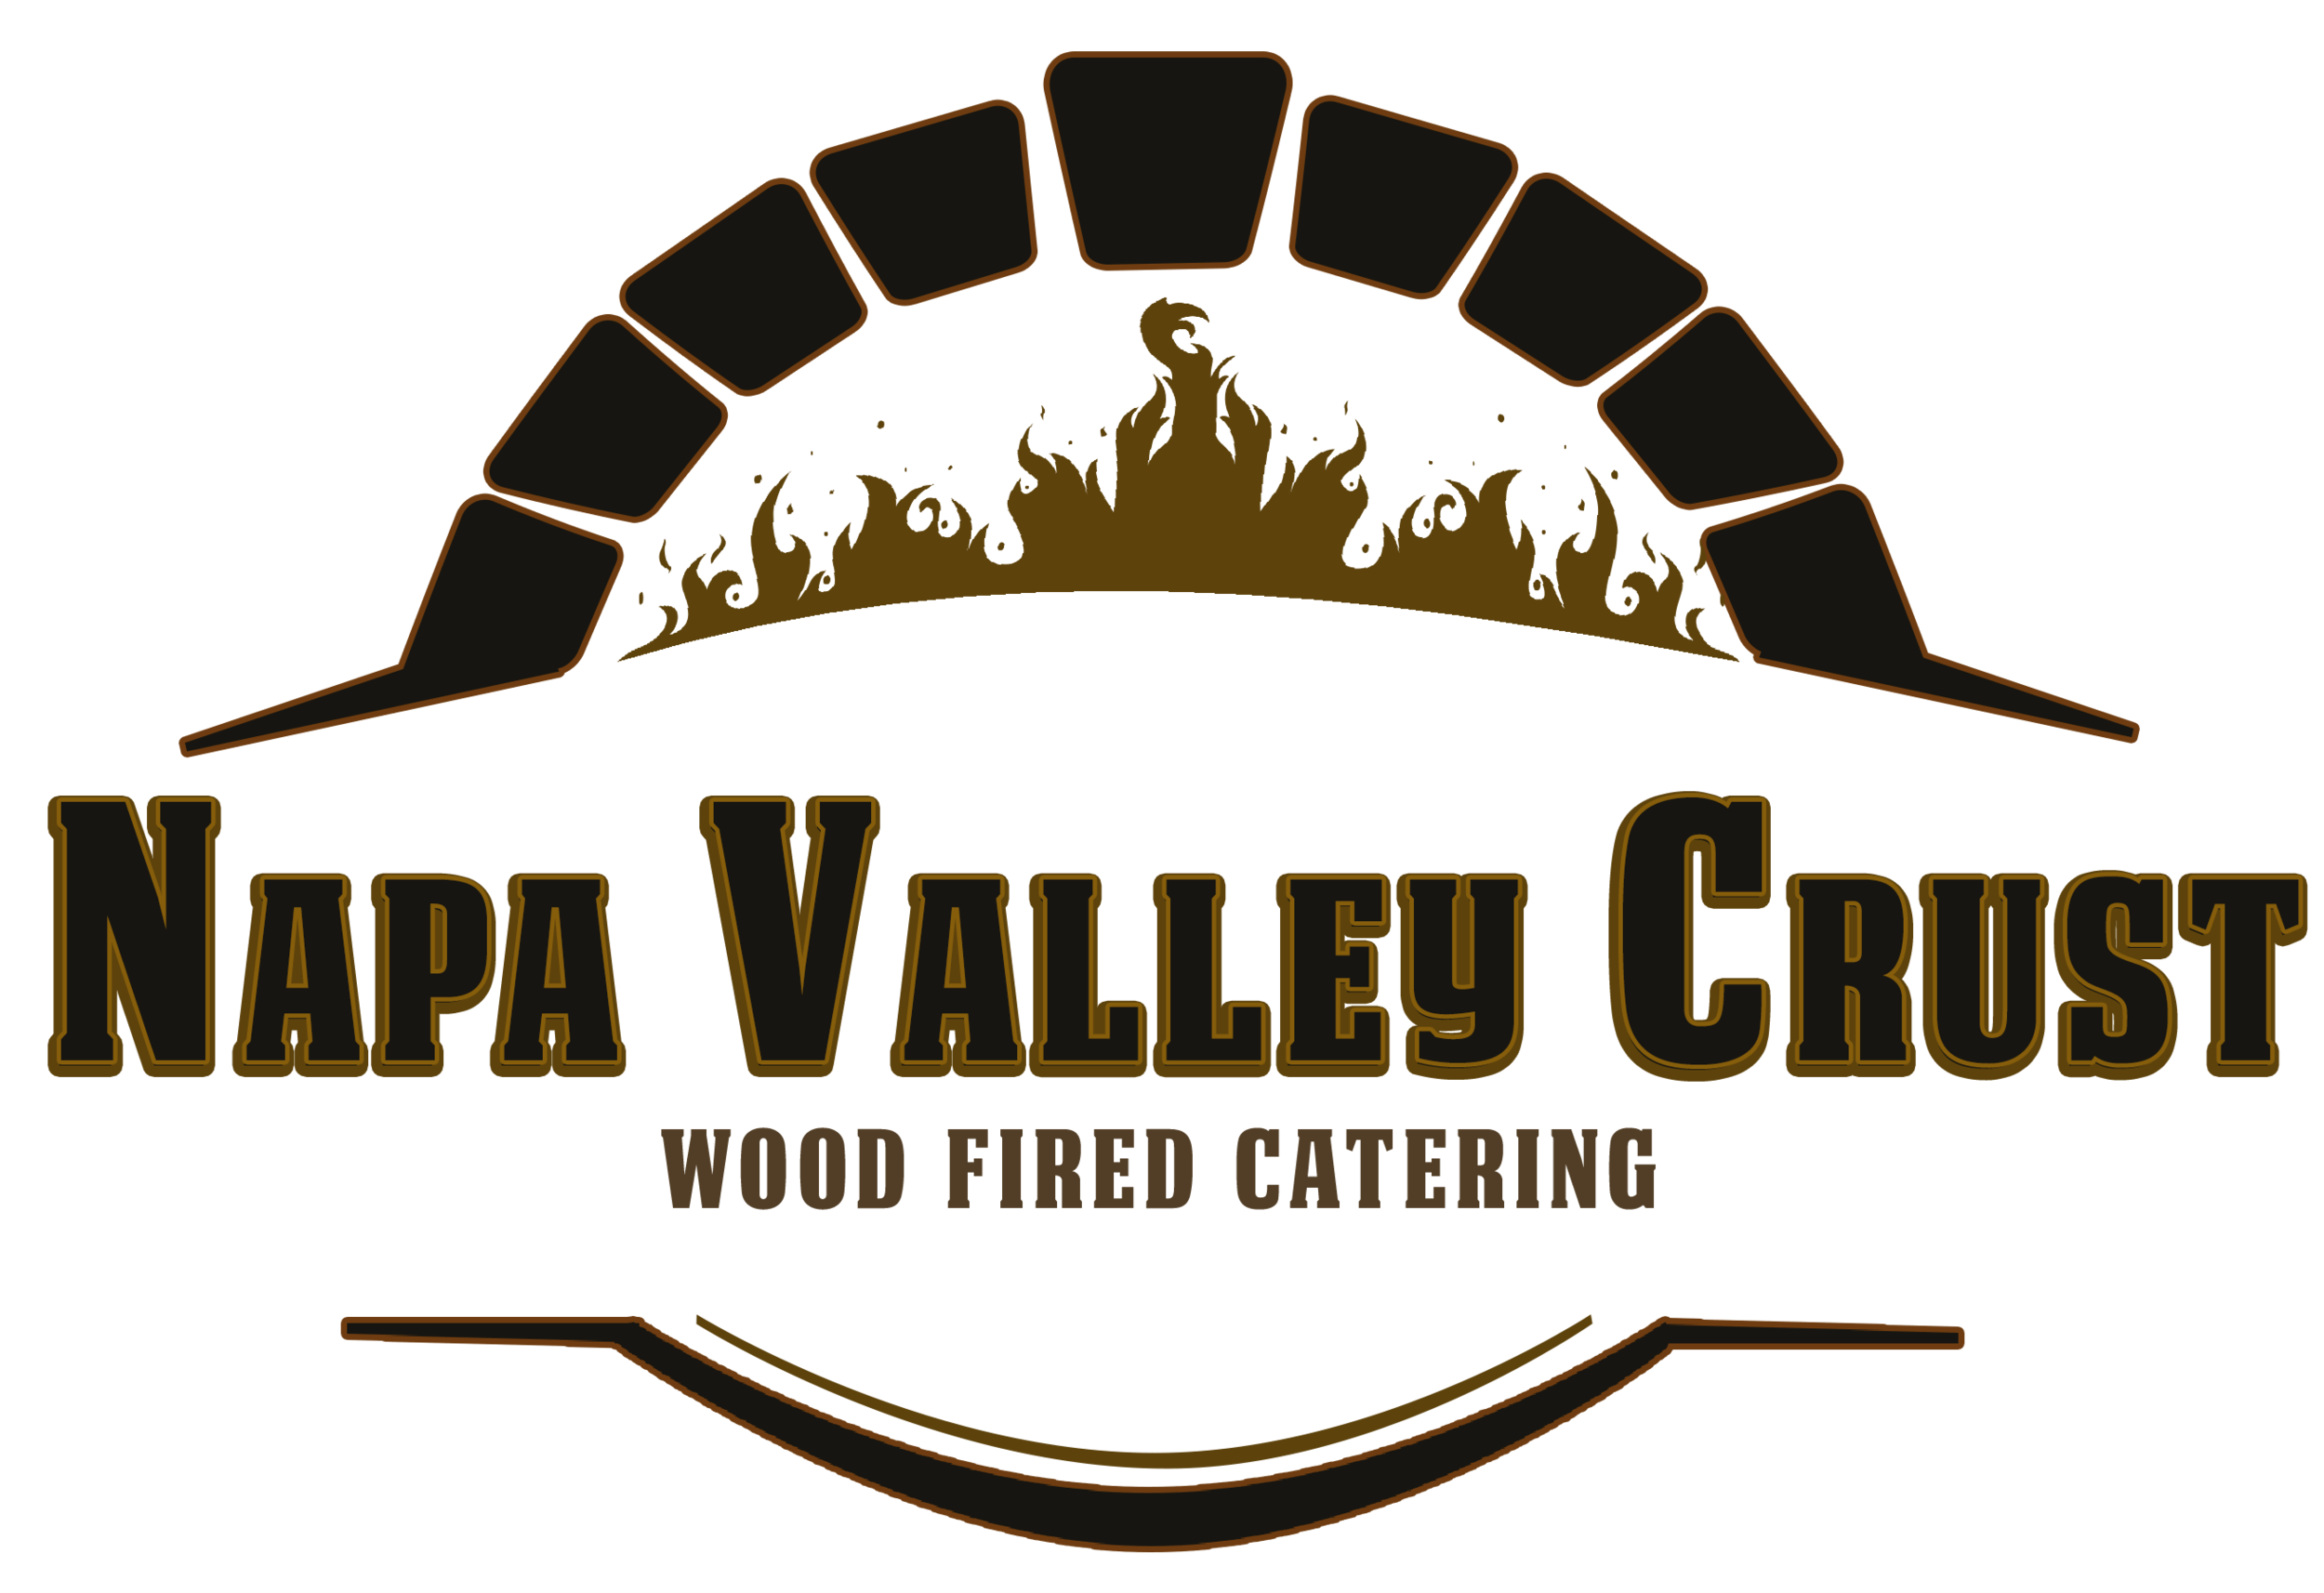 FINAL NAPA VALLEY CRUST LOGO.png